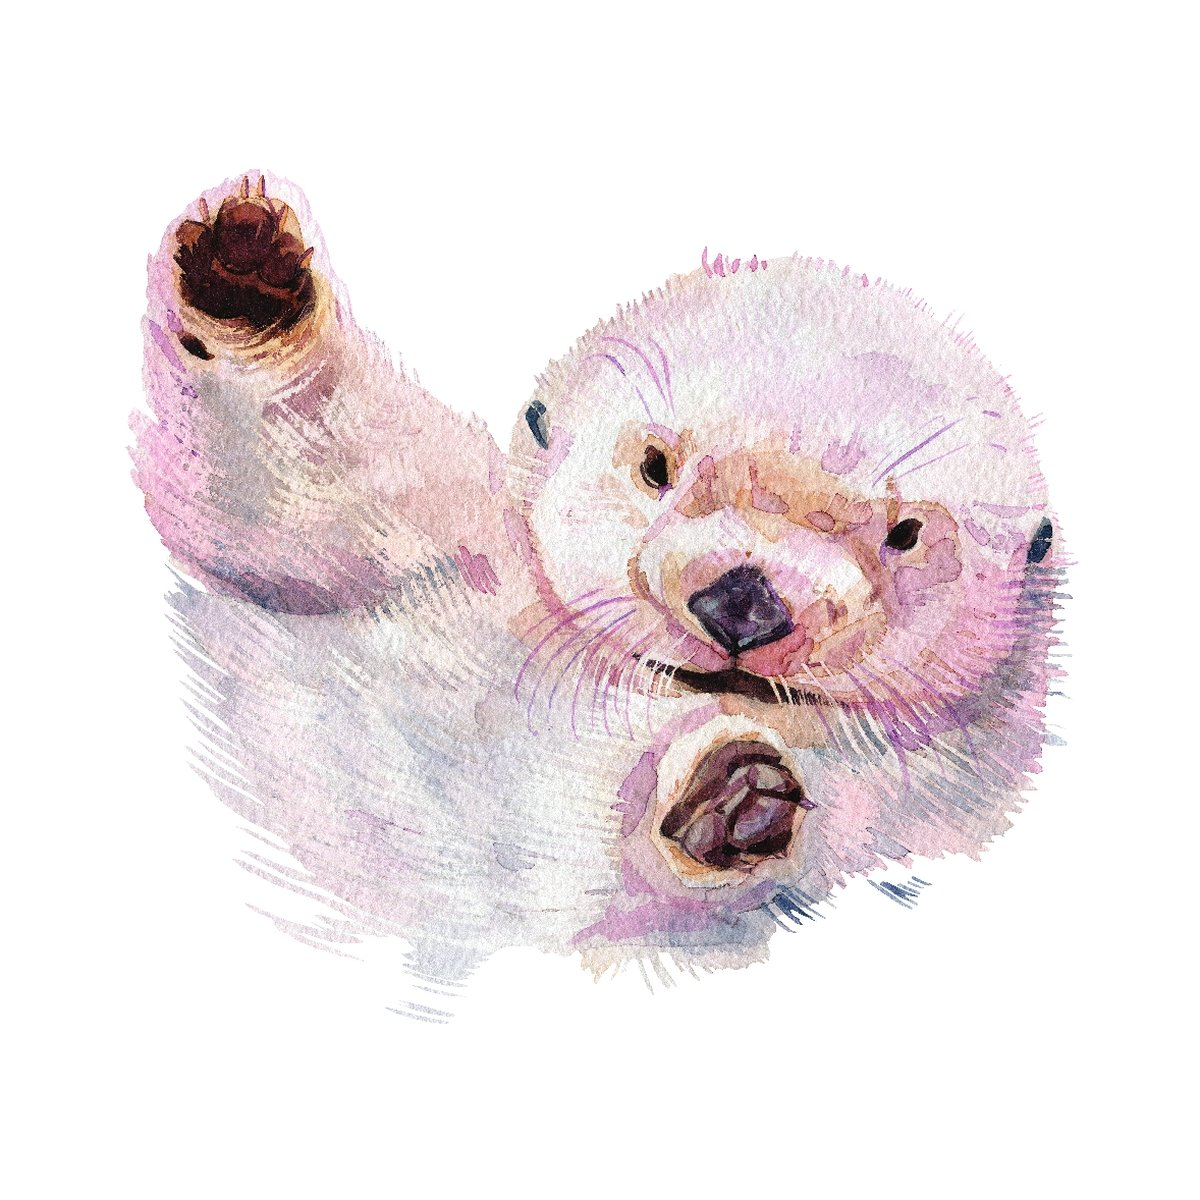 Sea Otter Home Wall Shelf Decor Animal Decorations Watercolor Square Sign - Inch, Metal, 12x12